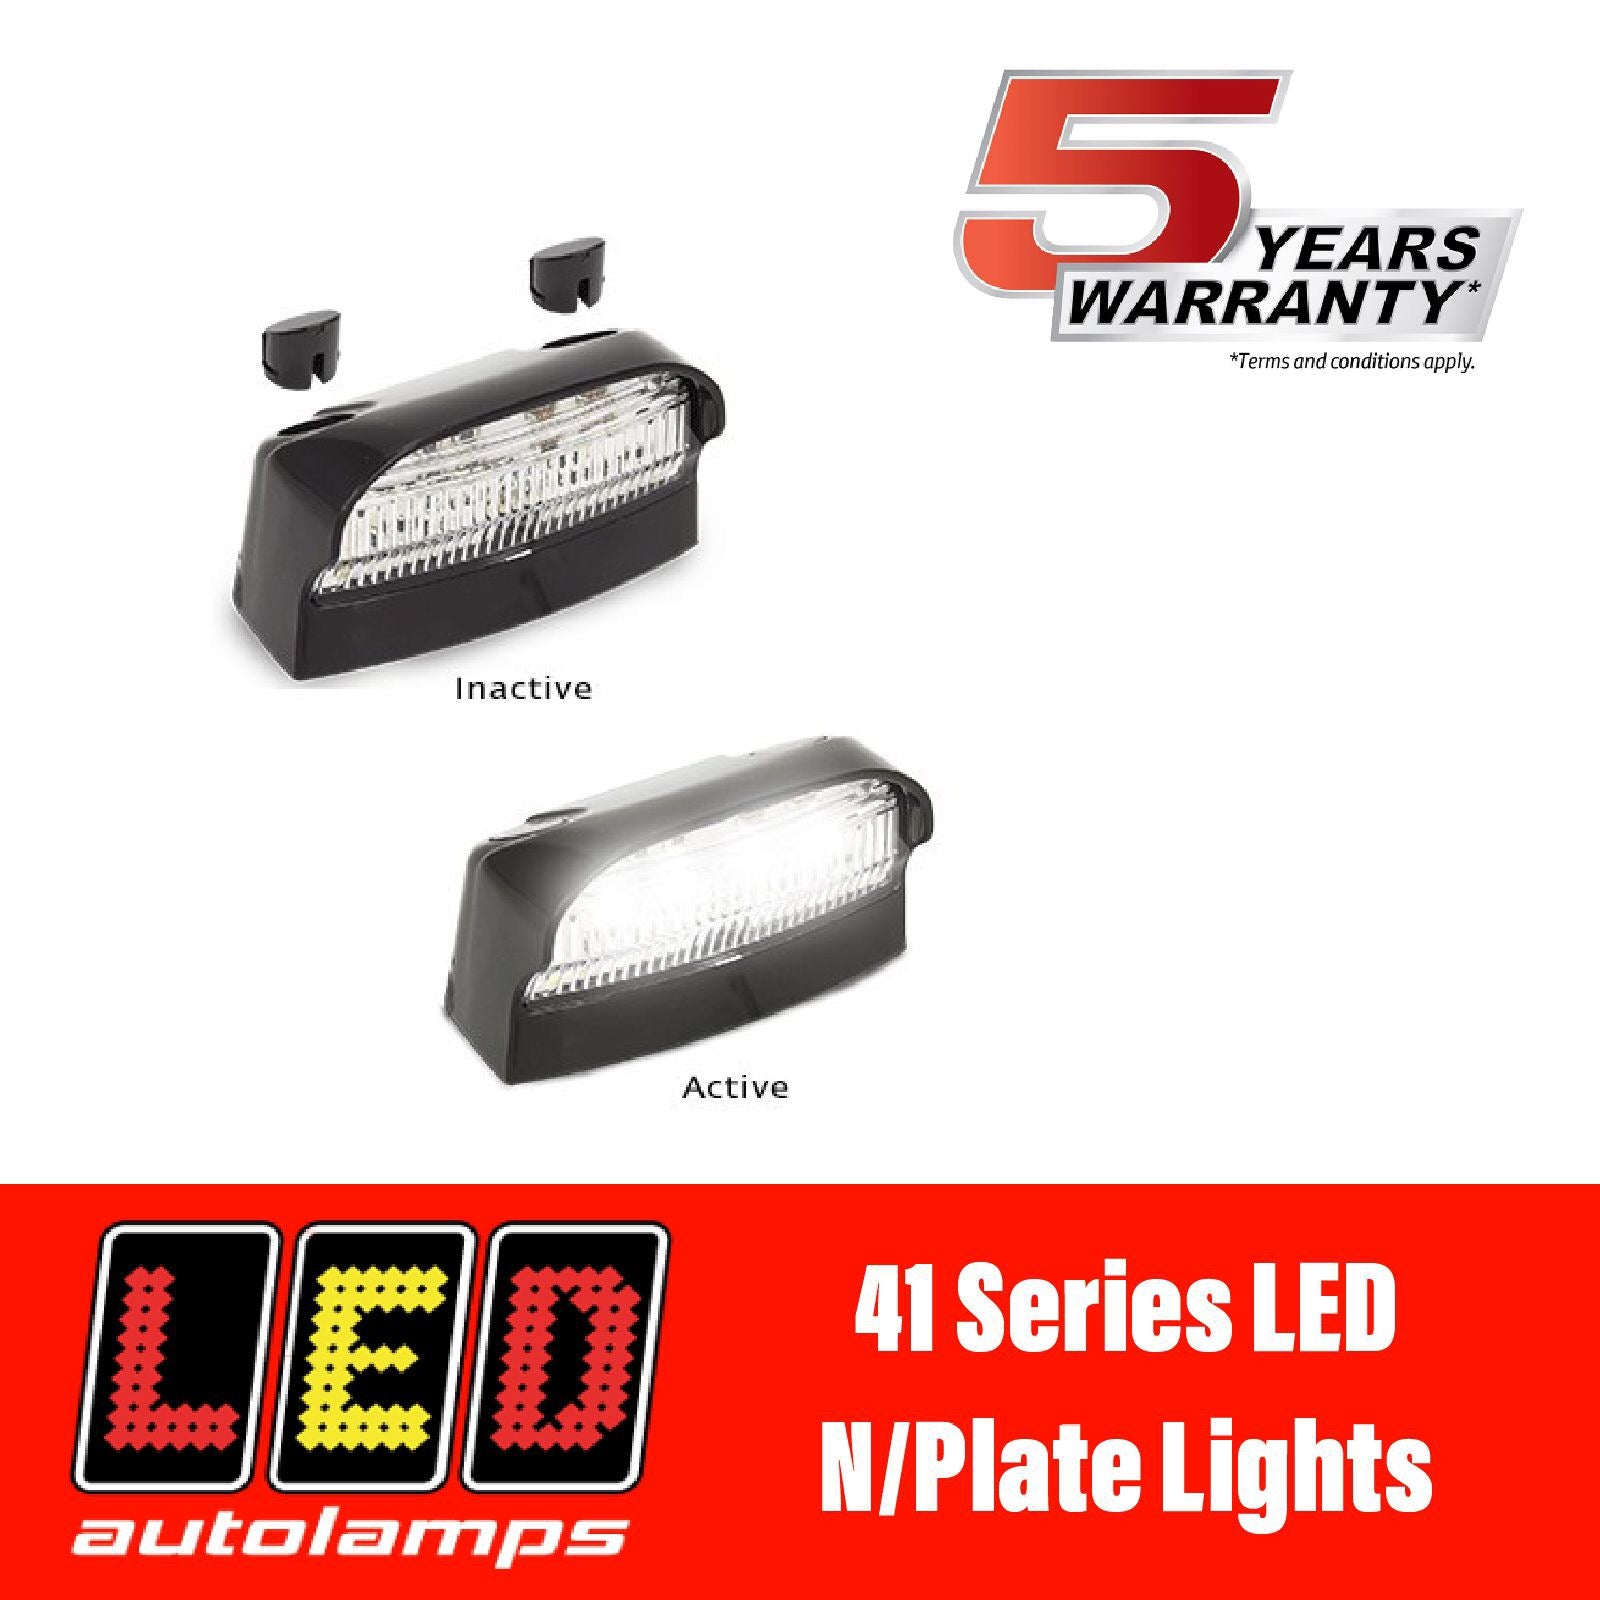 LED AUTOLAMPS 41 SERIES LED Number Plate Light